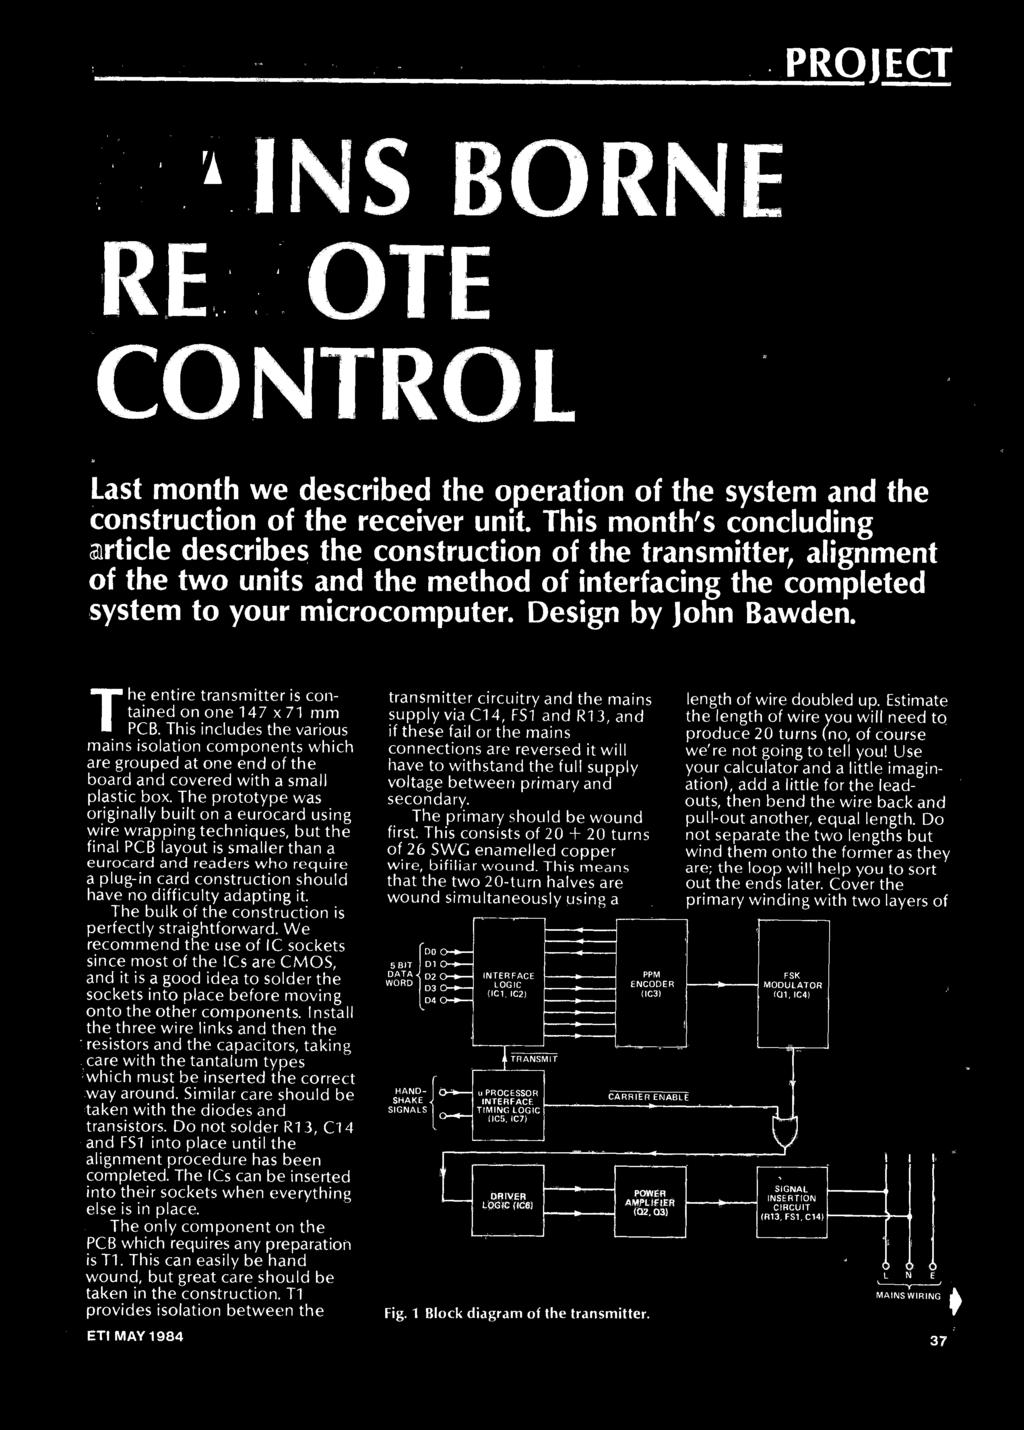 To Build Keep The Electronics Automatic Light Switch Microtanic 19a Power Supply Circuit Free Electronic Circuits 8085 Projects Design By John Bawden Entire Transmitter Is Contained On One 147 X 71 Mm 37 Project